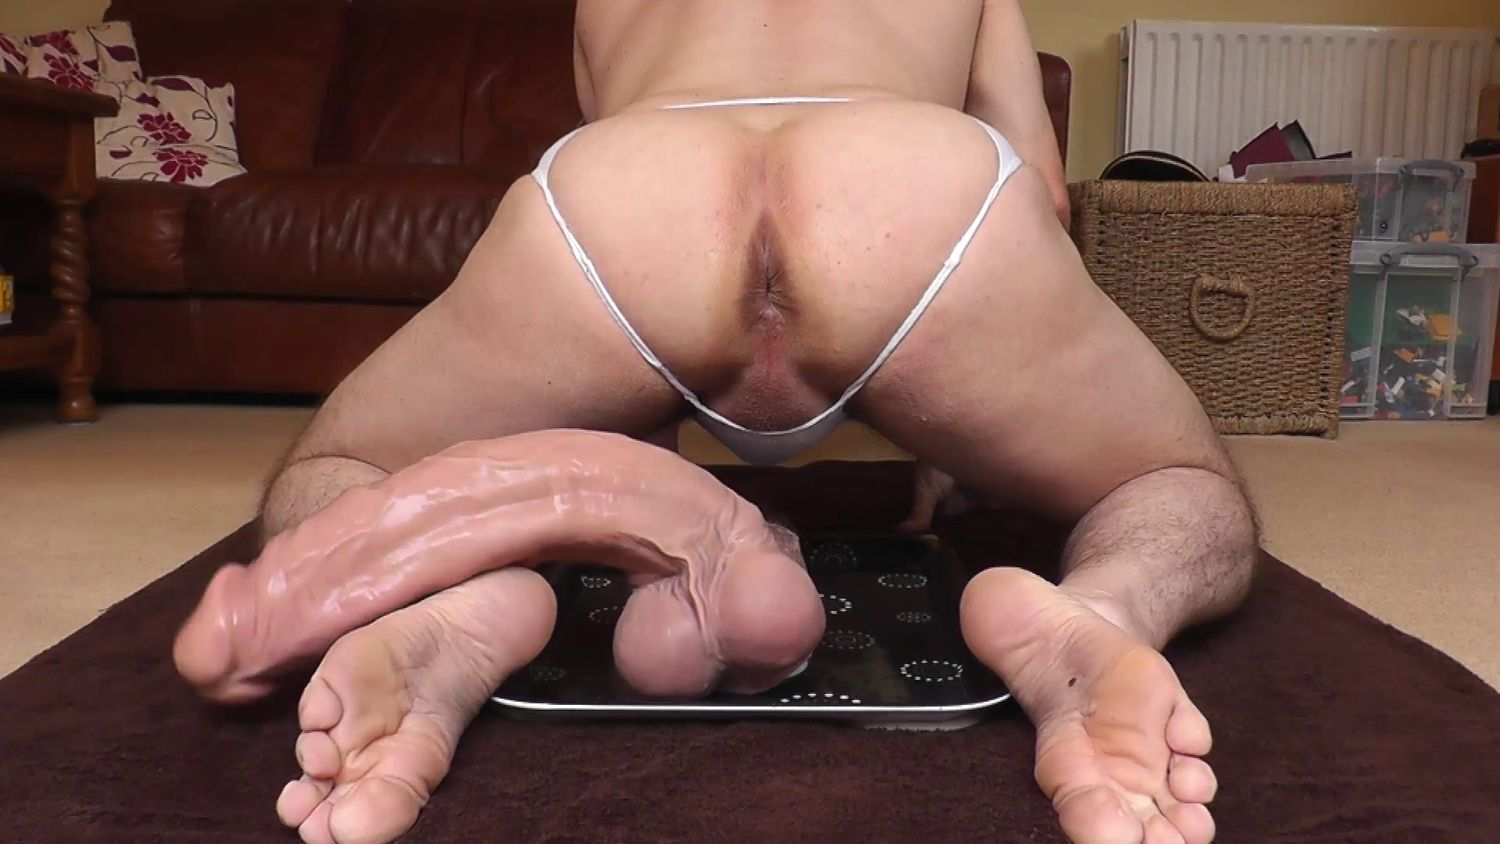 anal porn with toys for men